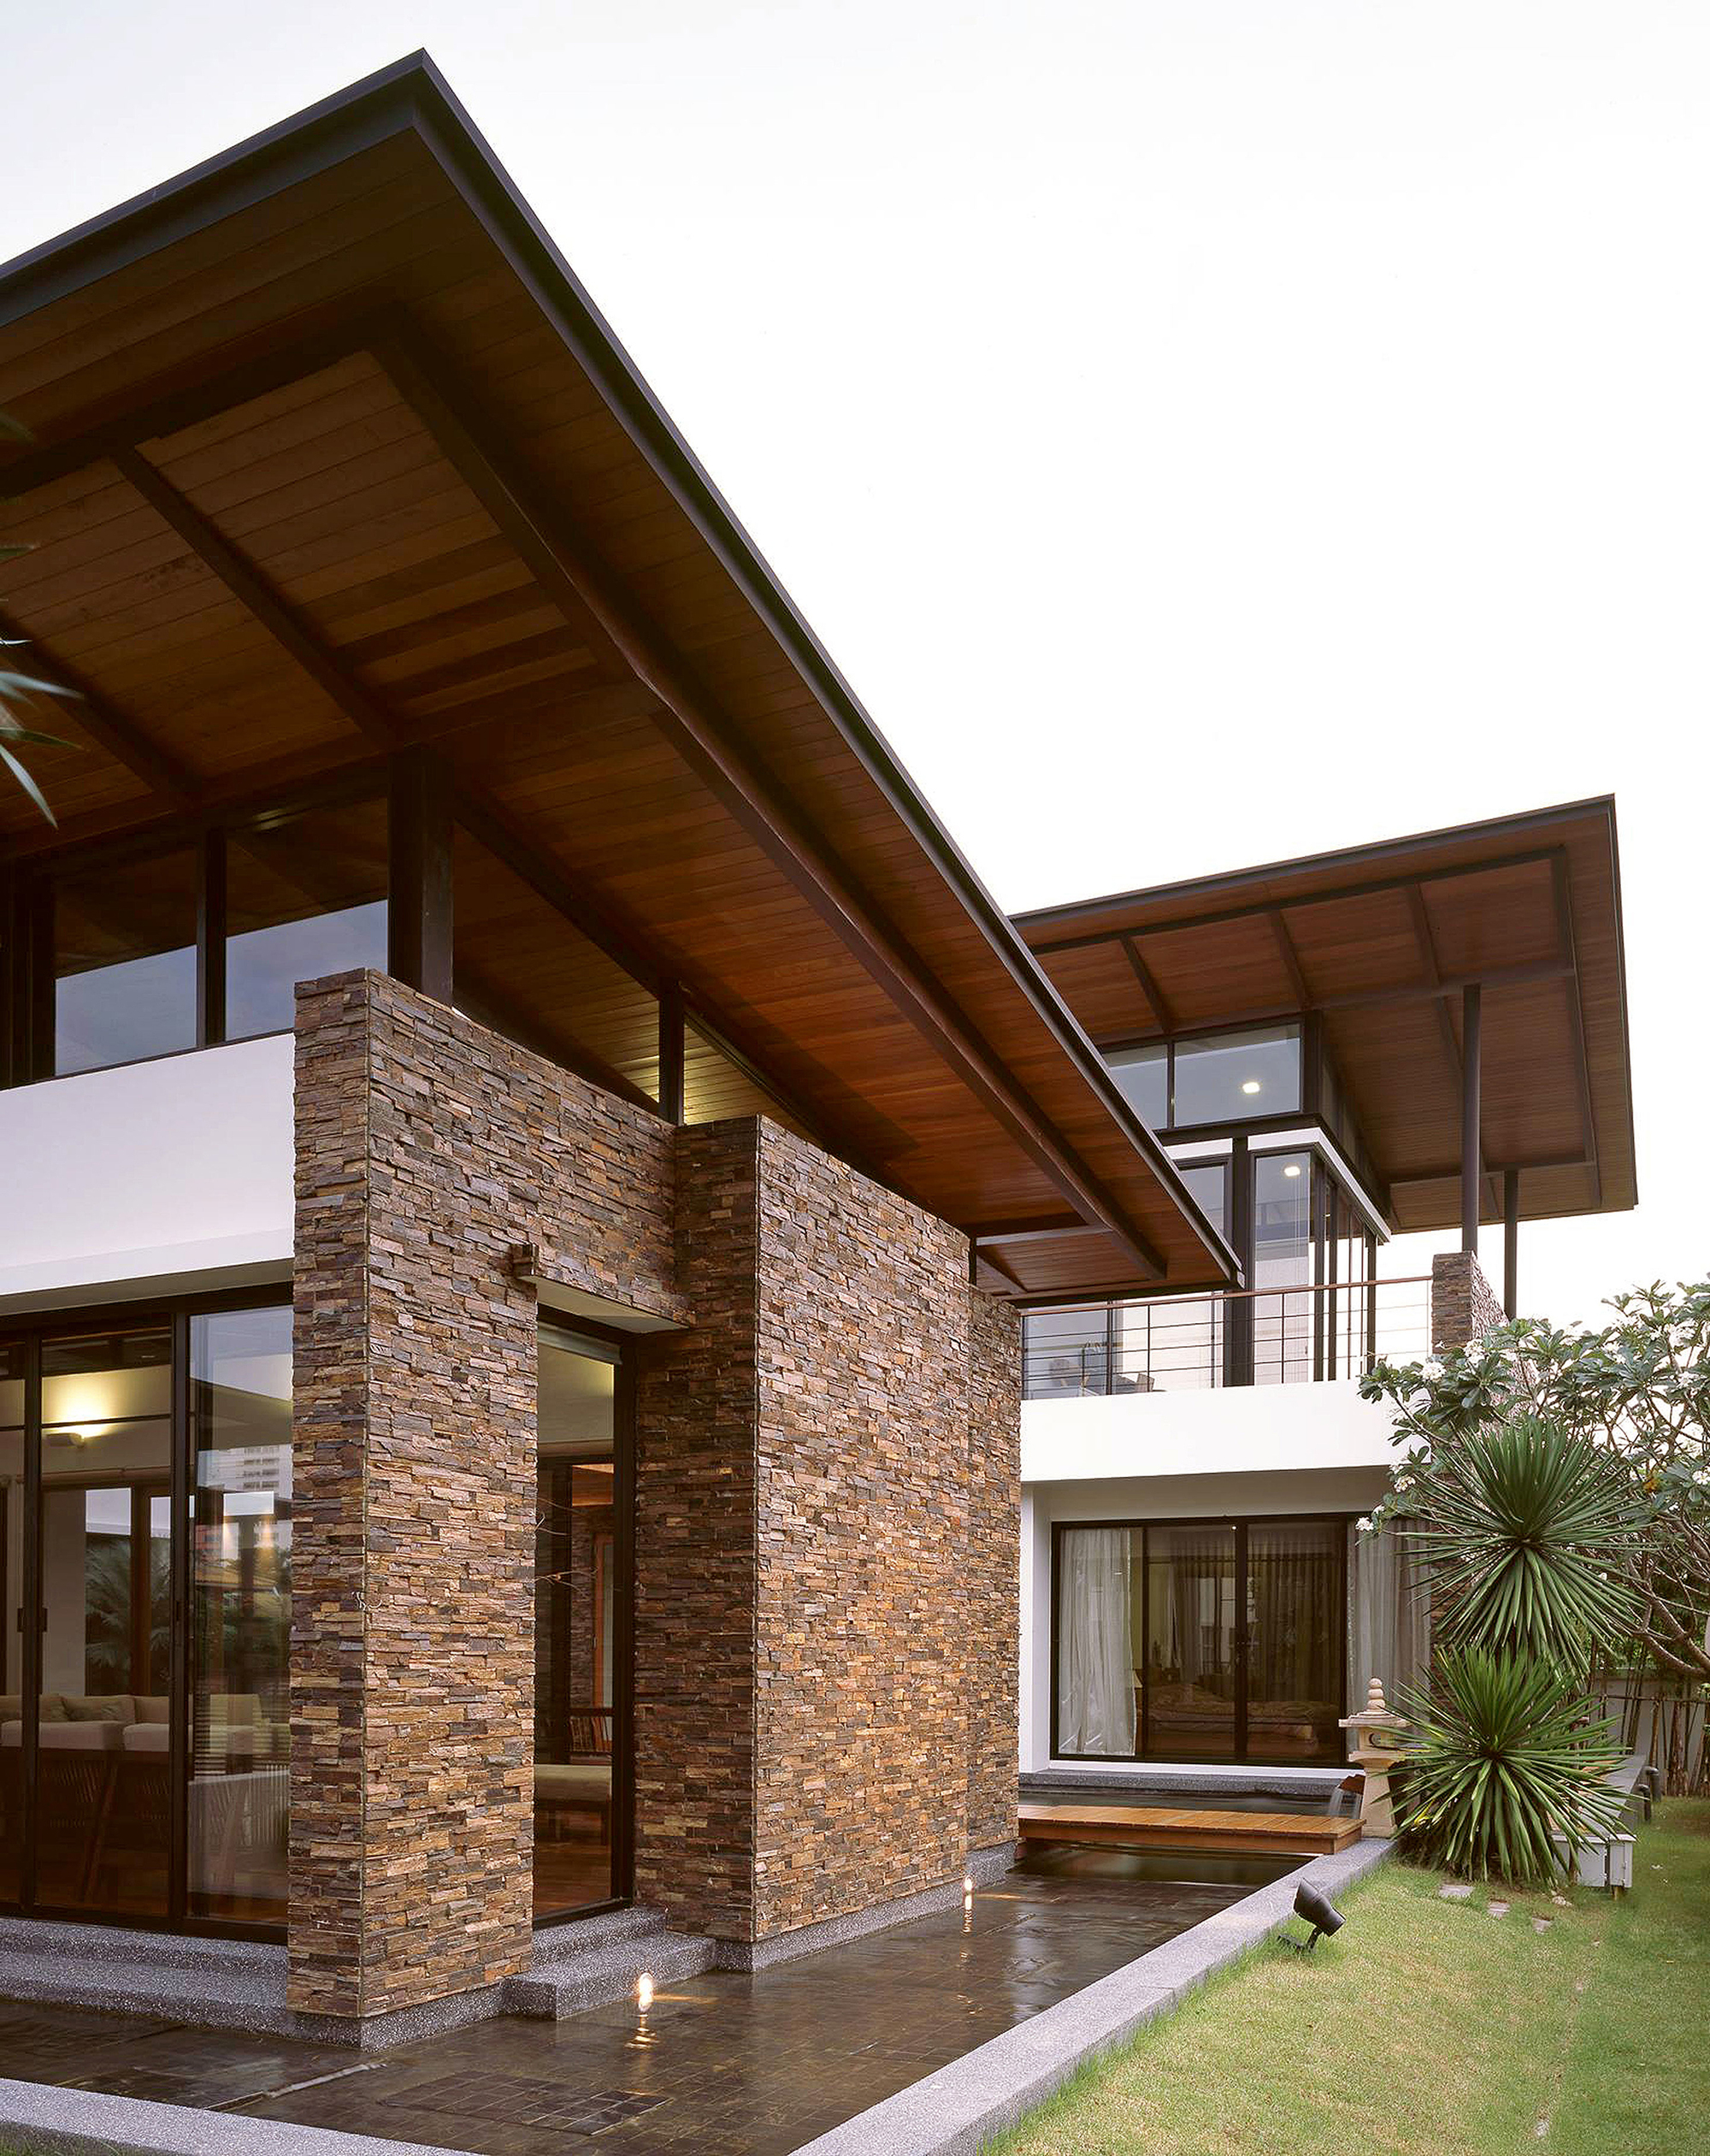 Gallery of nature house junsekino architect and design 4 for Beautiful natural houses